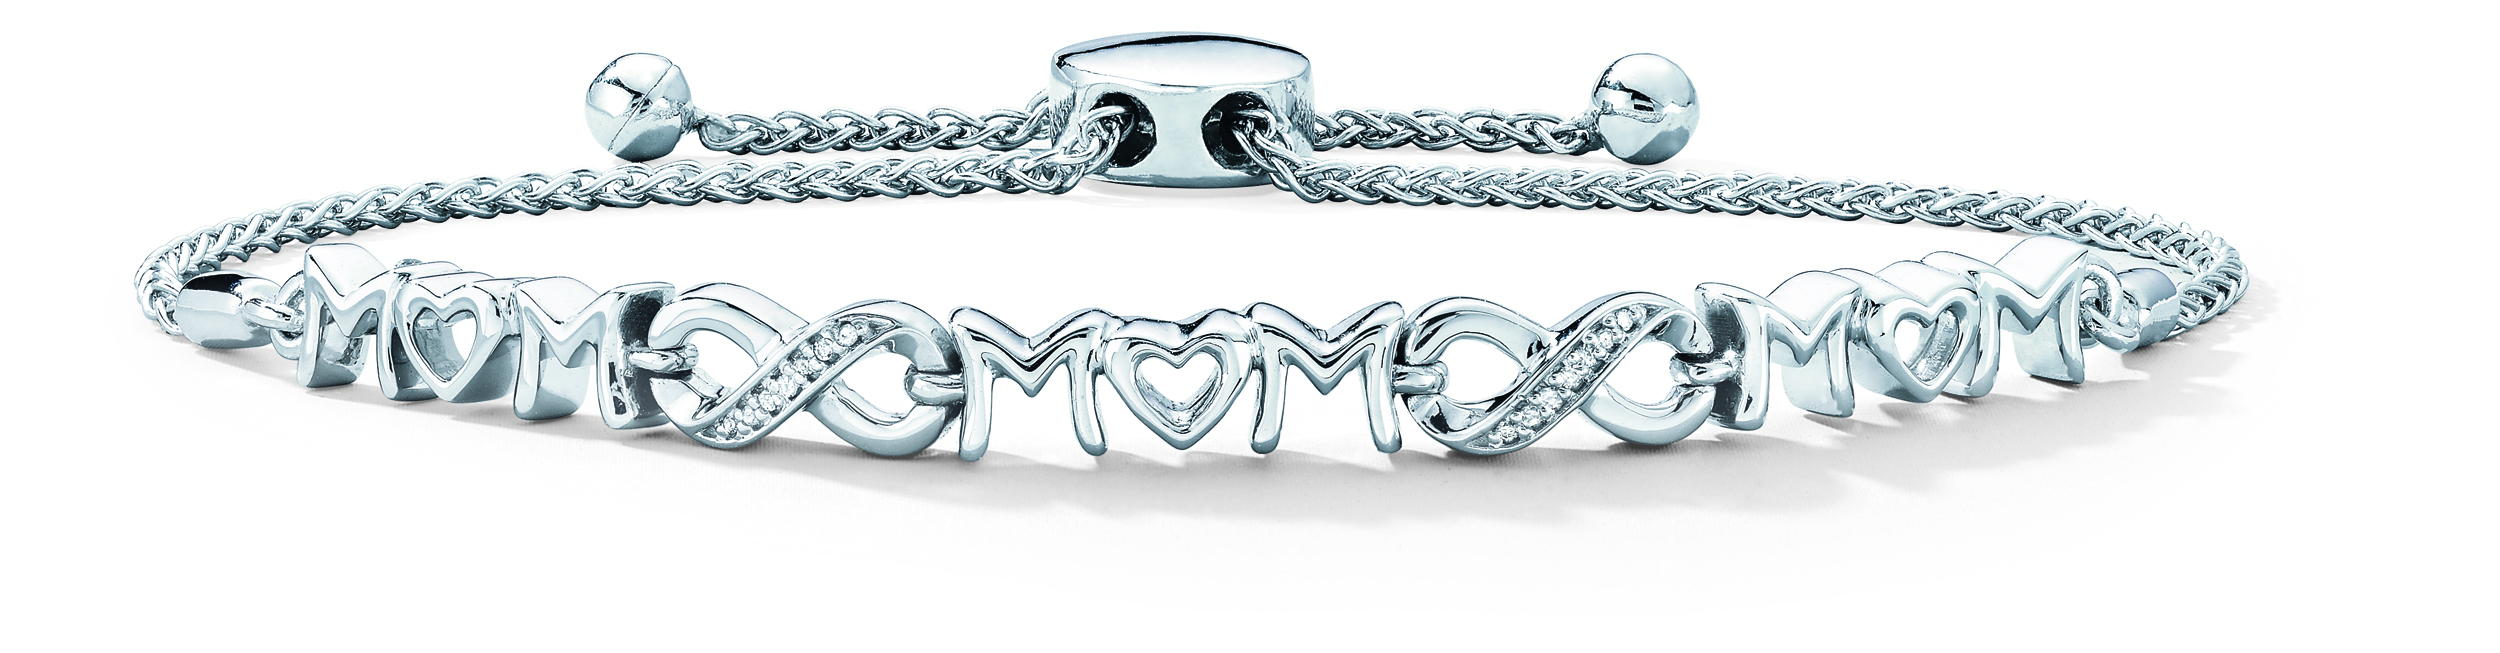 3ad6b5930ce8 Kay Jewelery Bolo Bracelet. Celebrate Mother S Day With A Gift From Kay  Jewelers Clarendon Moms